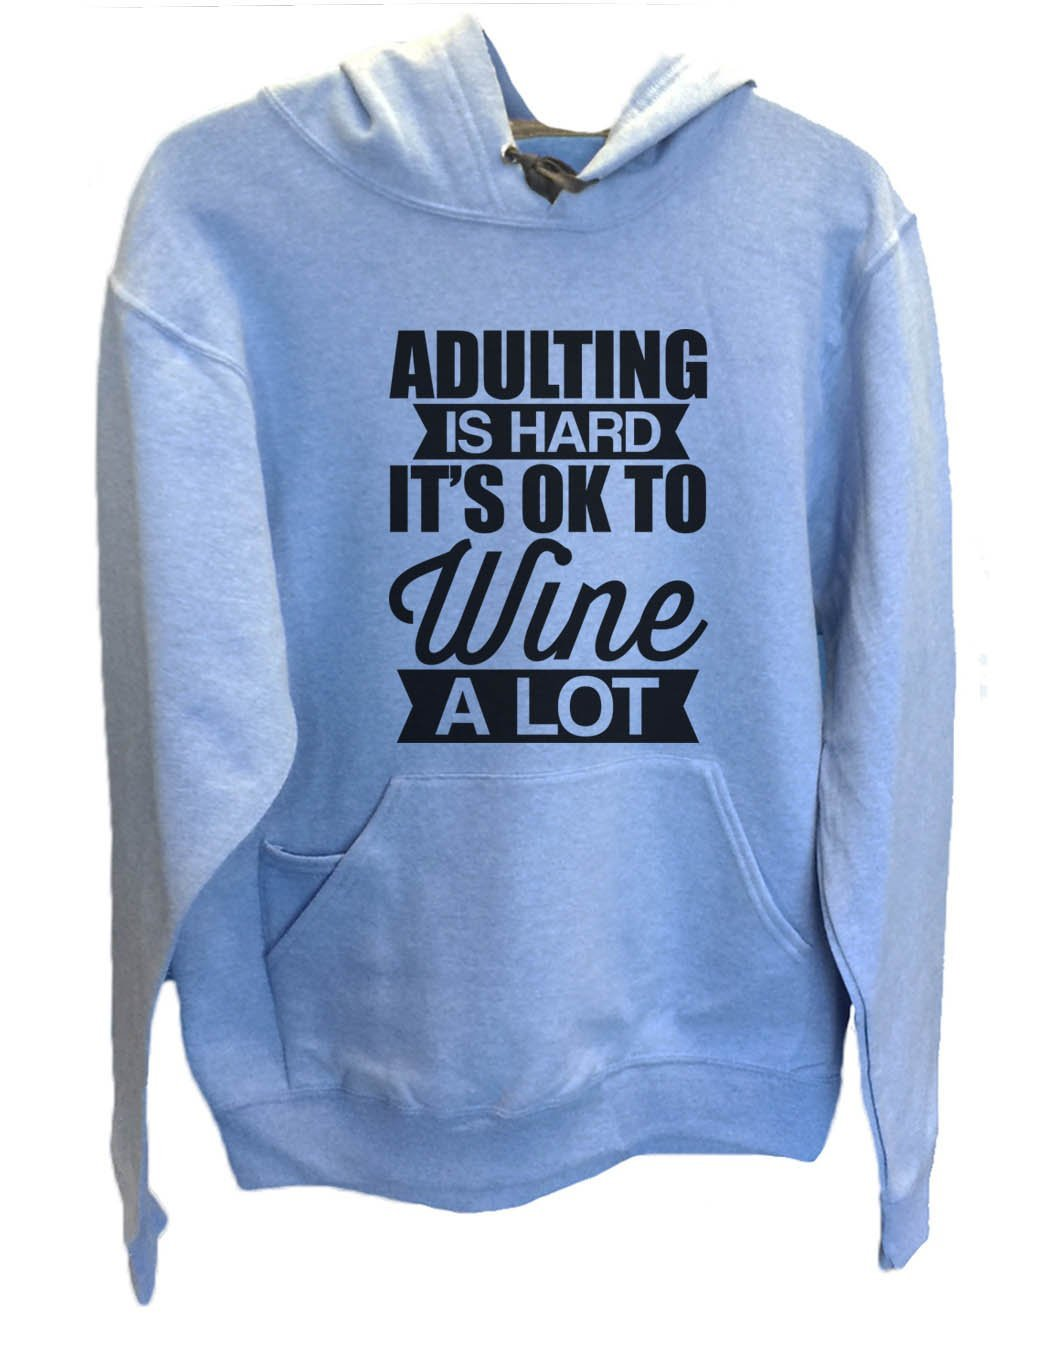 UNISEX HOODIE - Adulting Is Hard It's Ok To Wine A Lot - FUNNY MENS AND WOMENS HOODED SWEATSHIRTS - 2129 Funny Shirt Small / North Carolina Blue